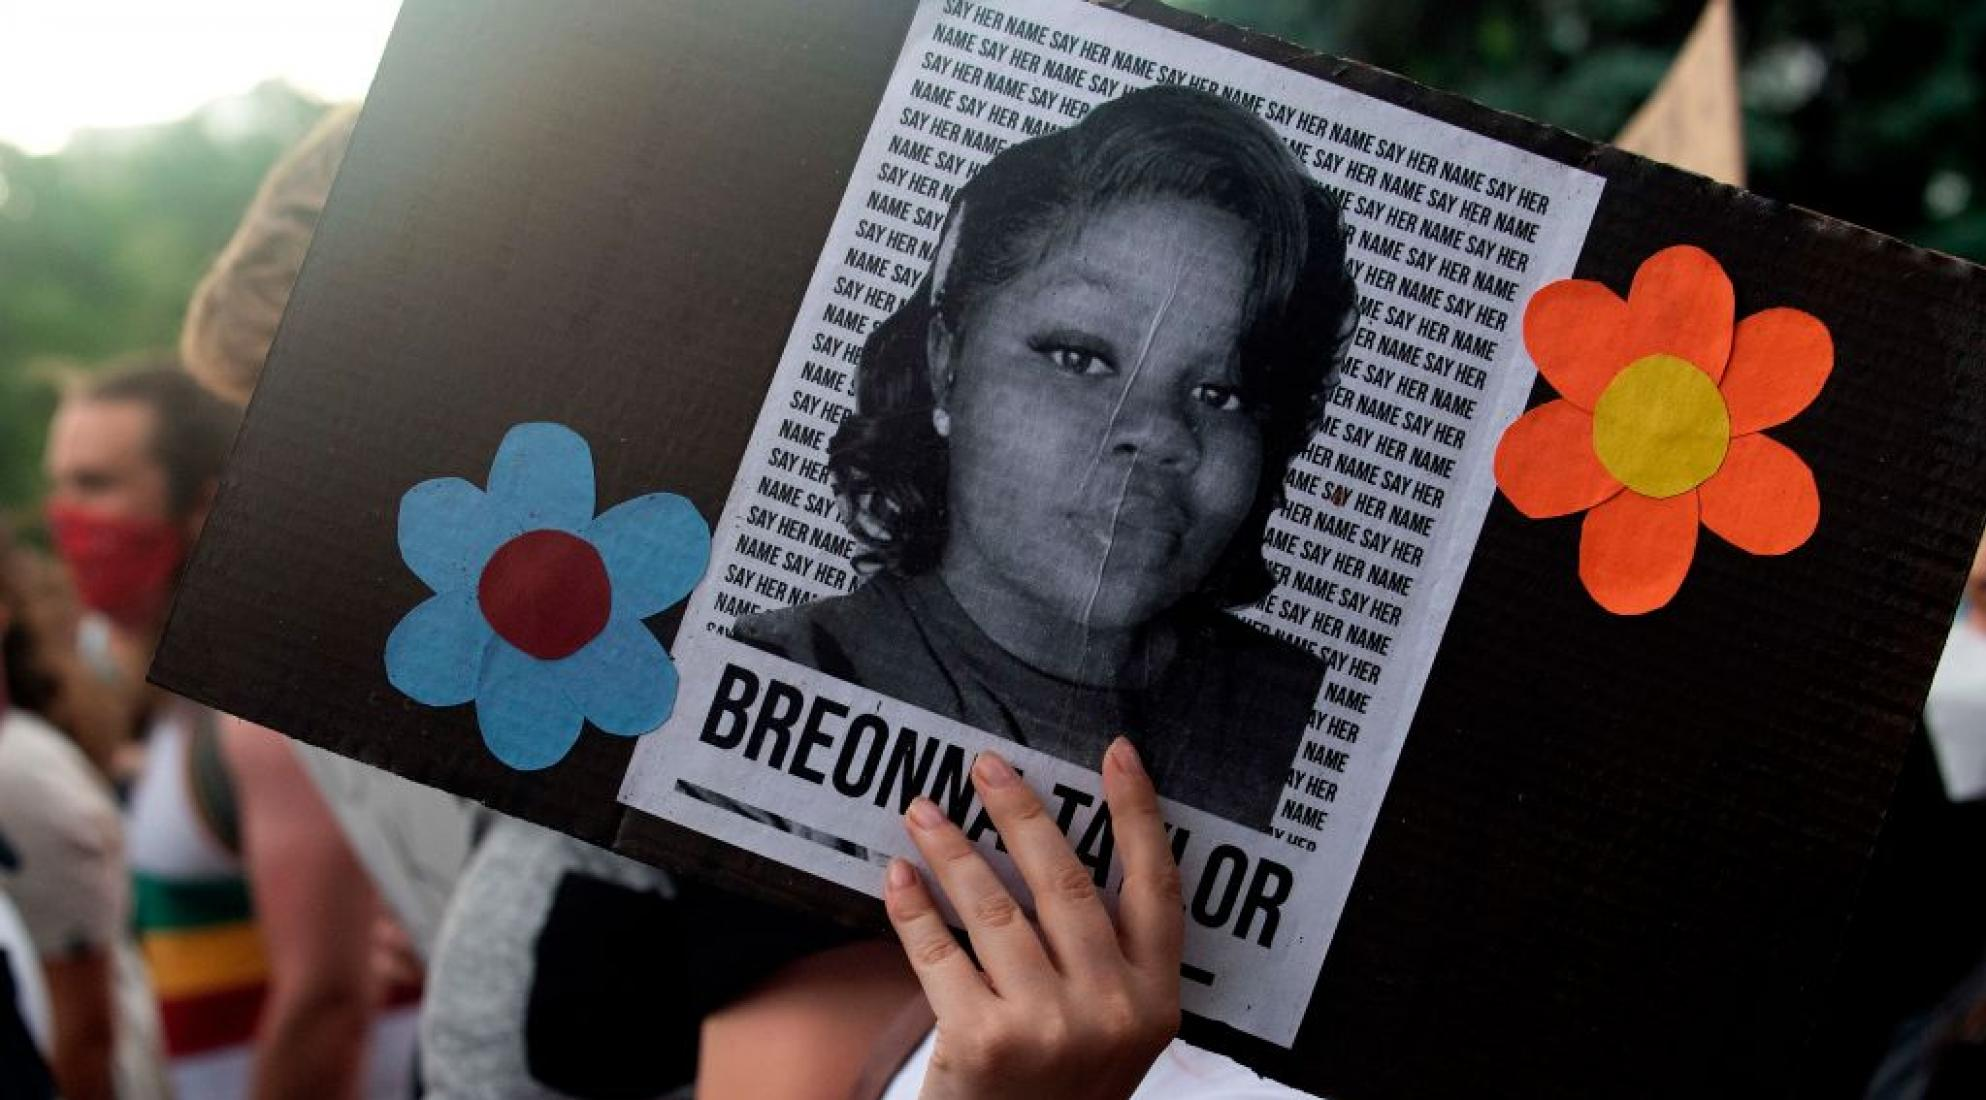 A demonstrator holds a sign with the image of Breonna Taylor